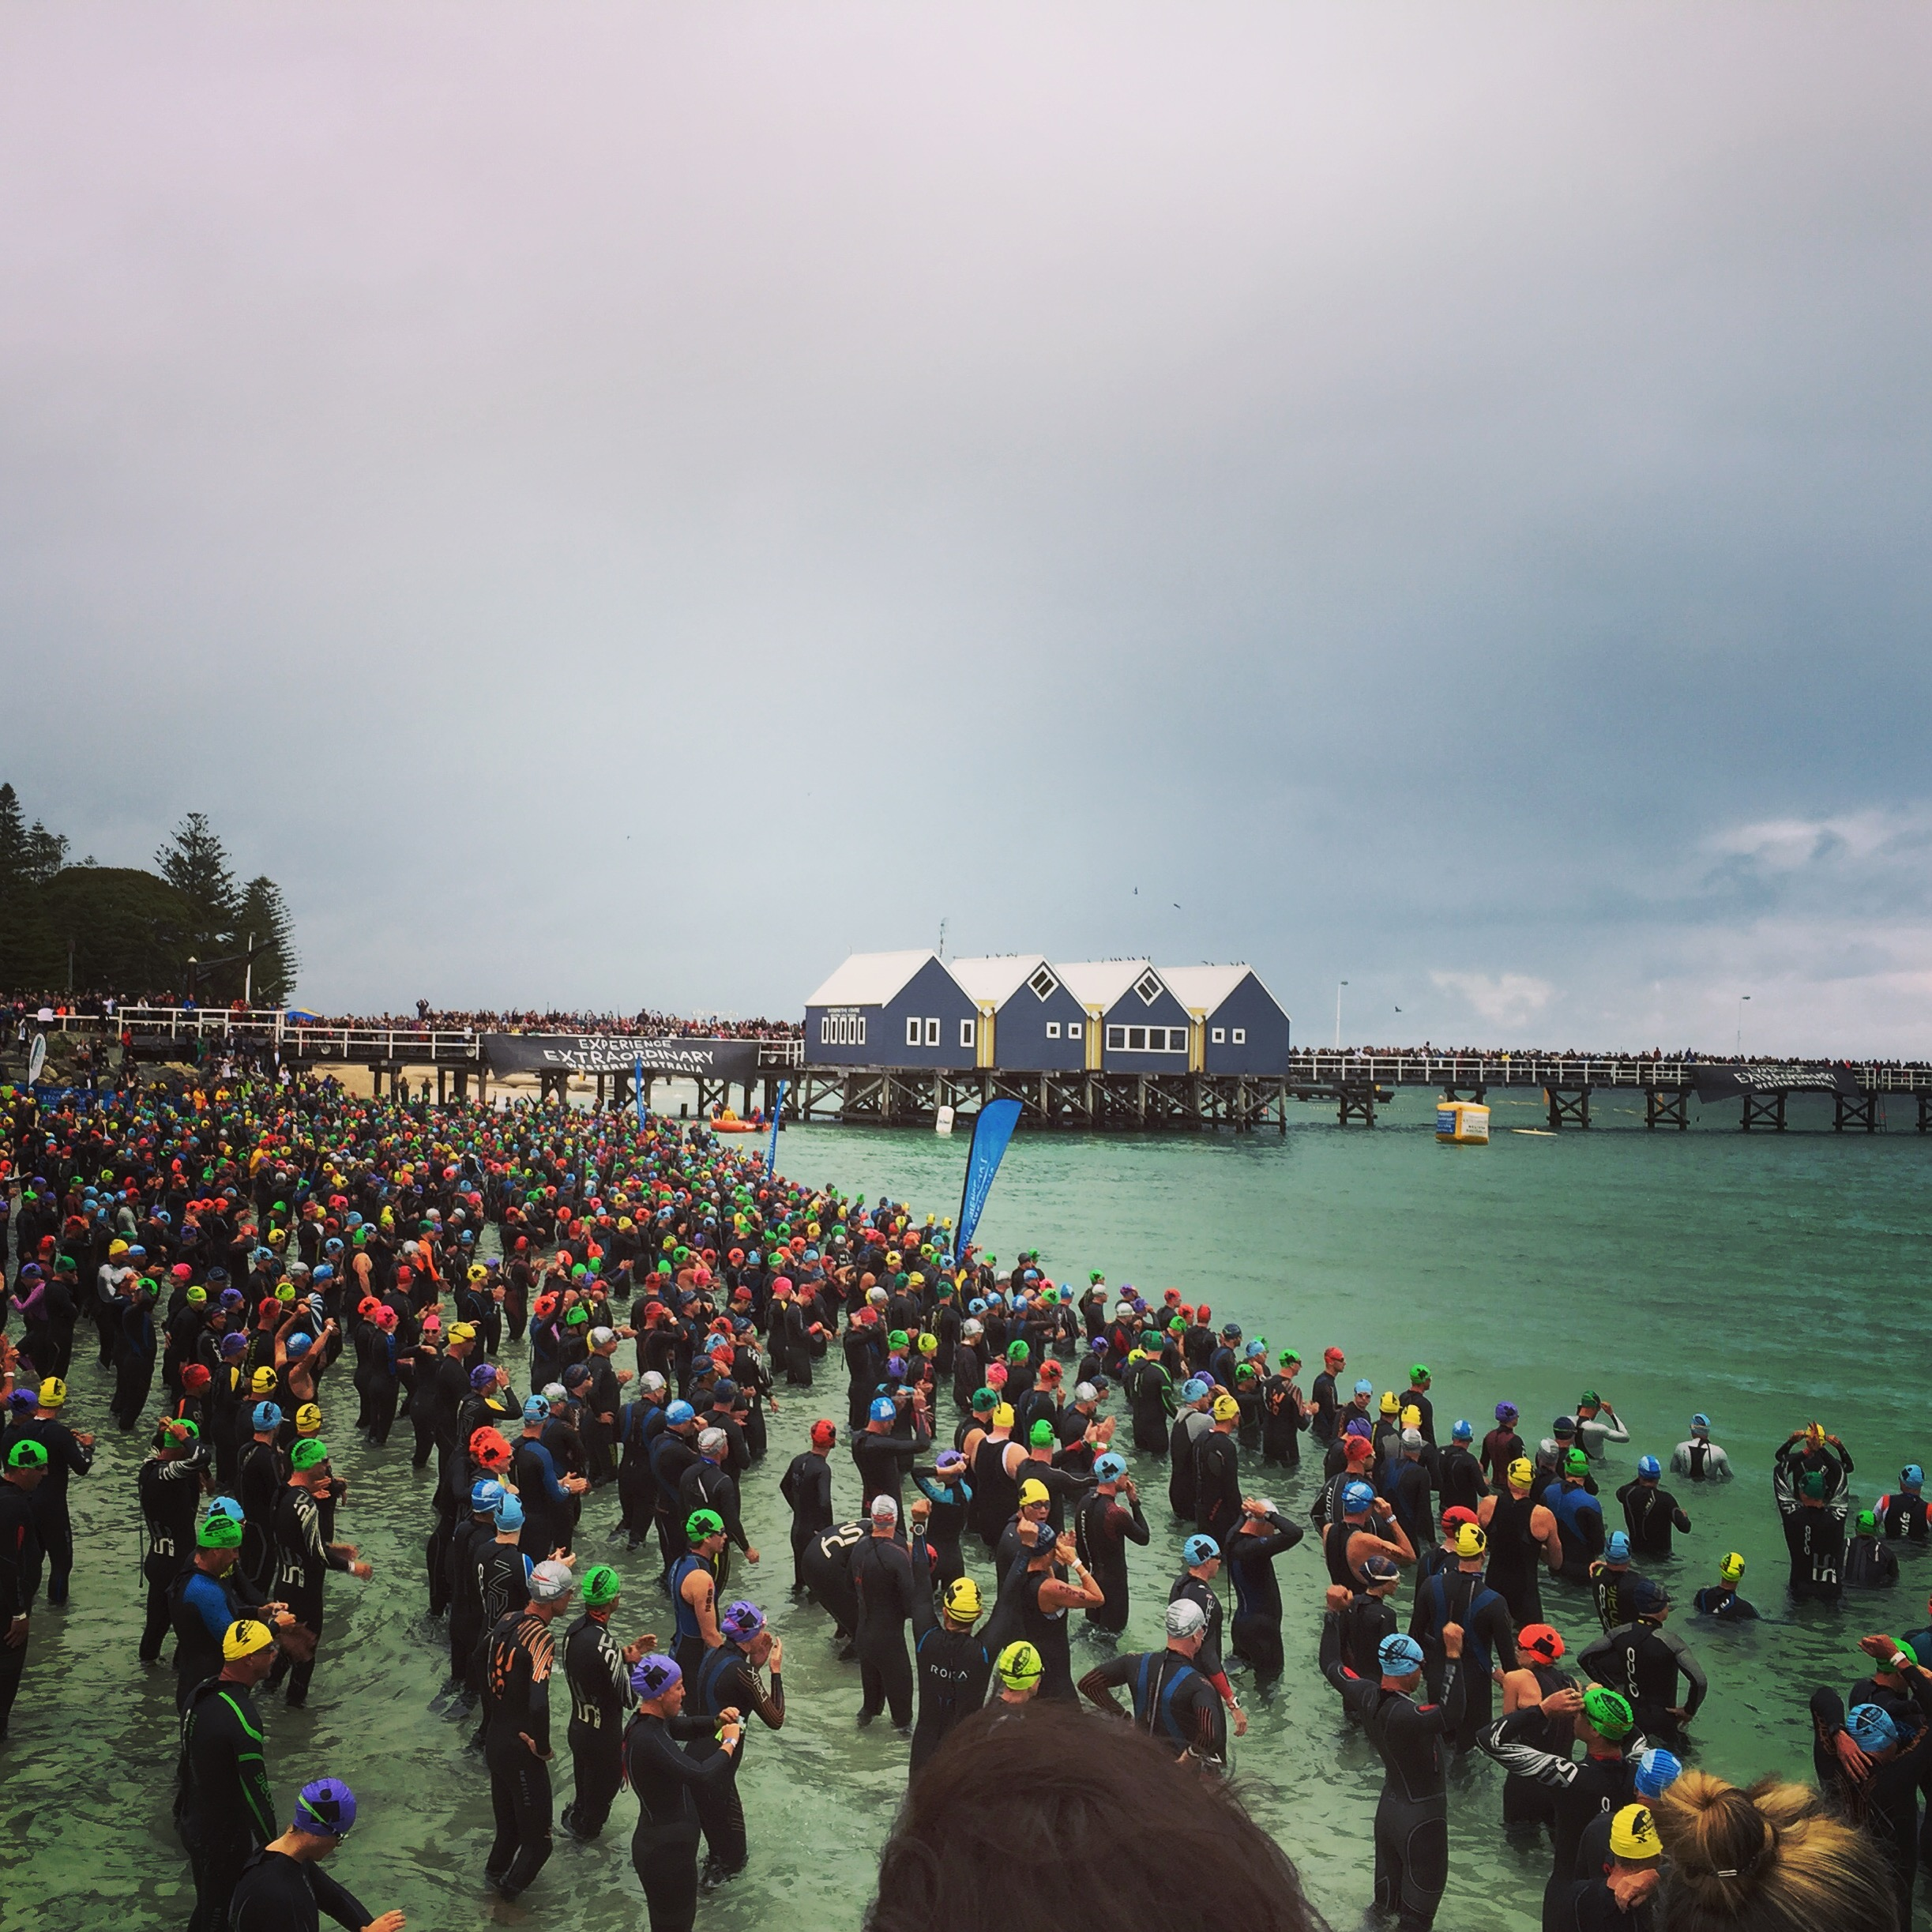 5:50am starting line at Busselton Pier